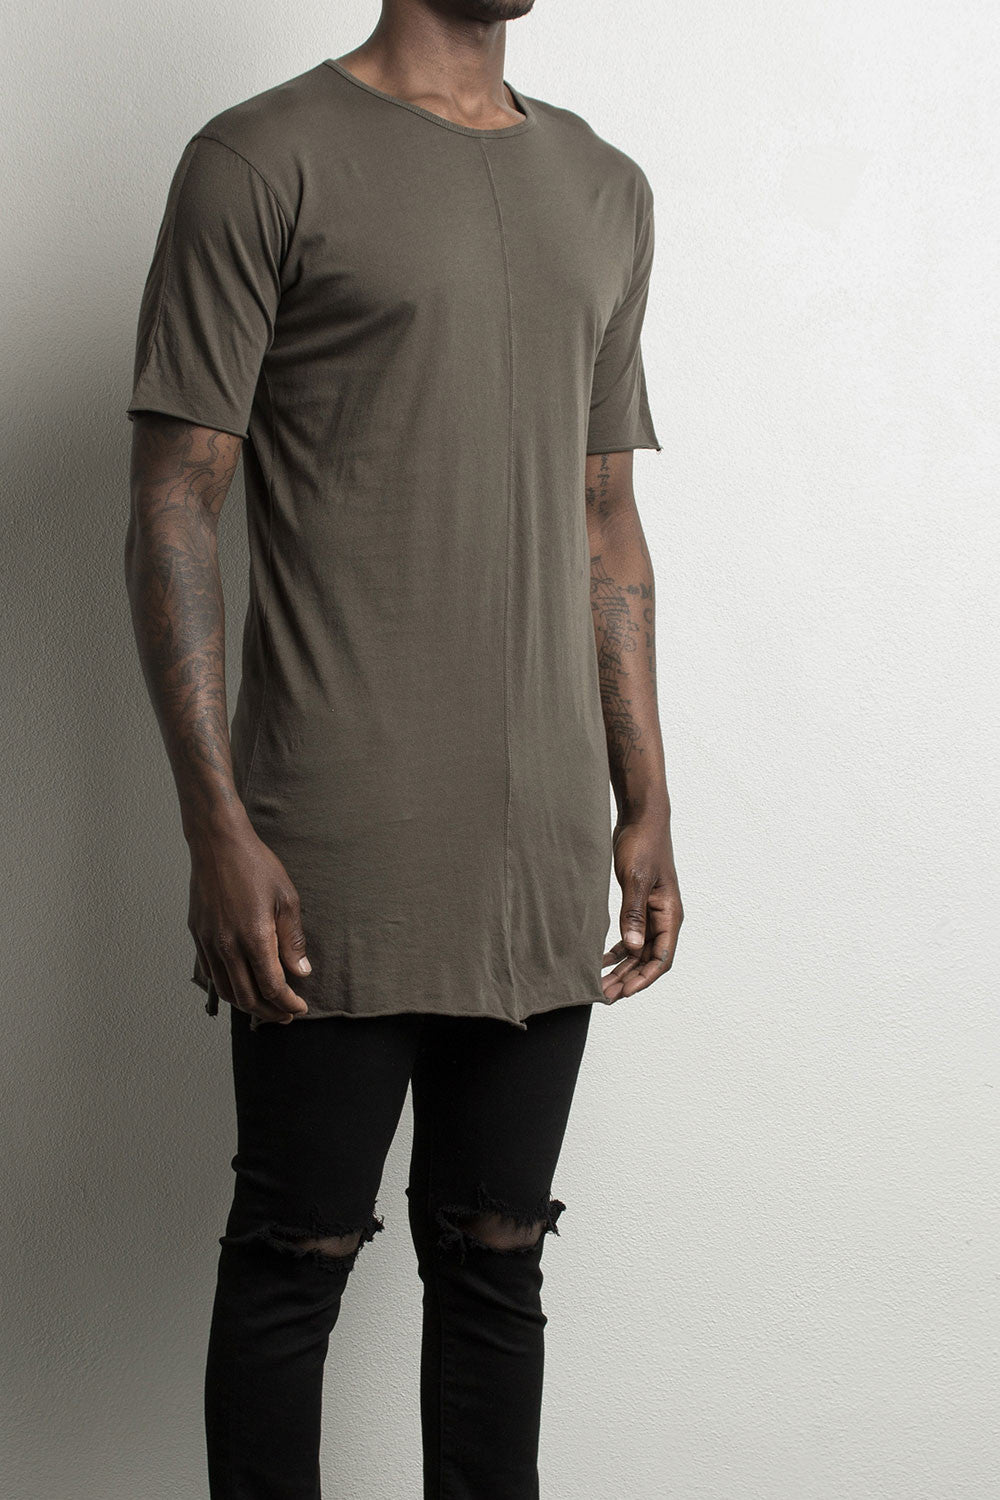 loose t-shirt by daniel patrick in Army